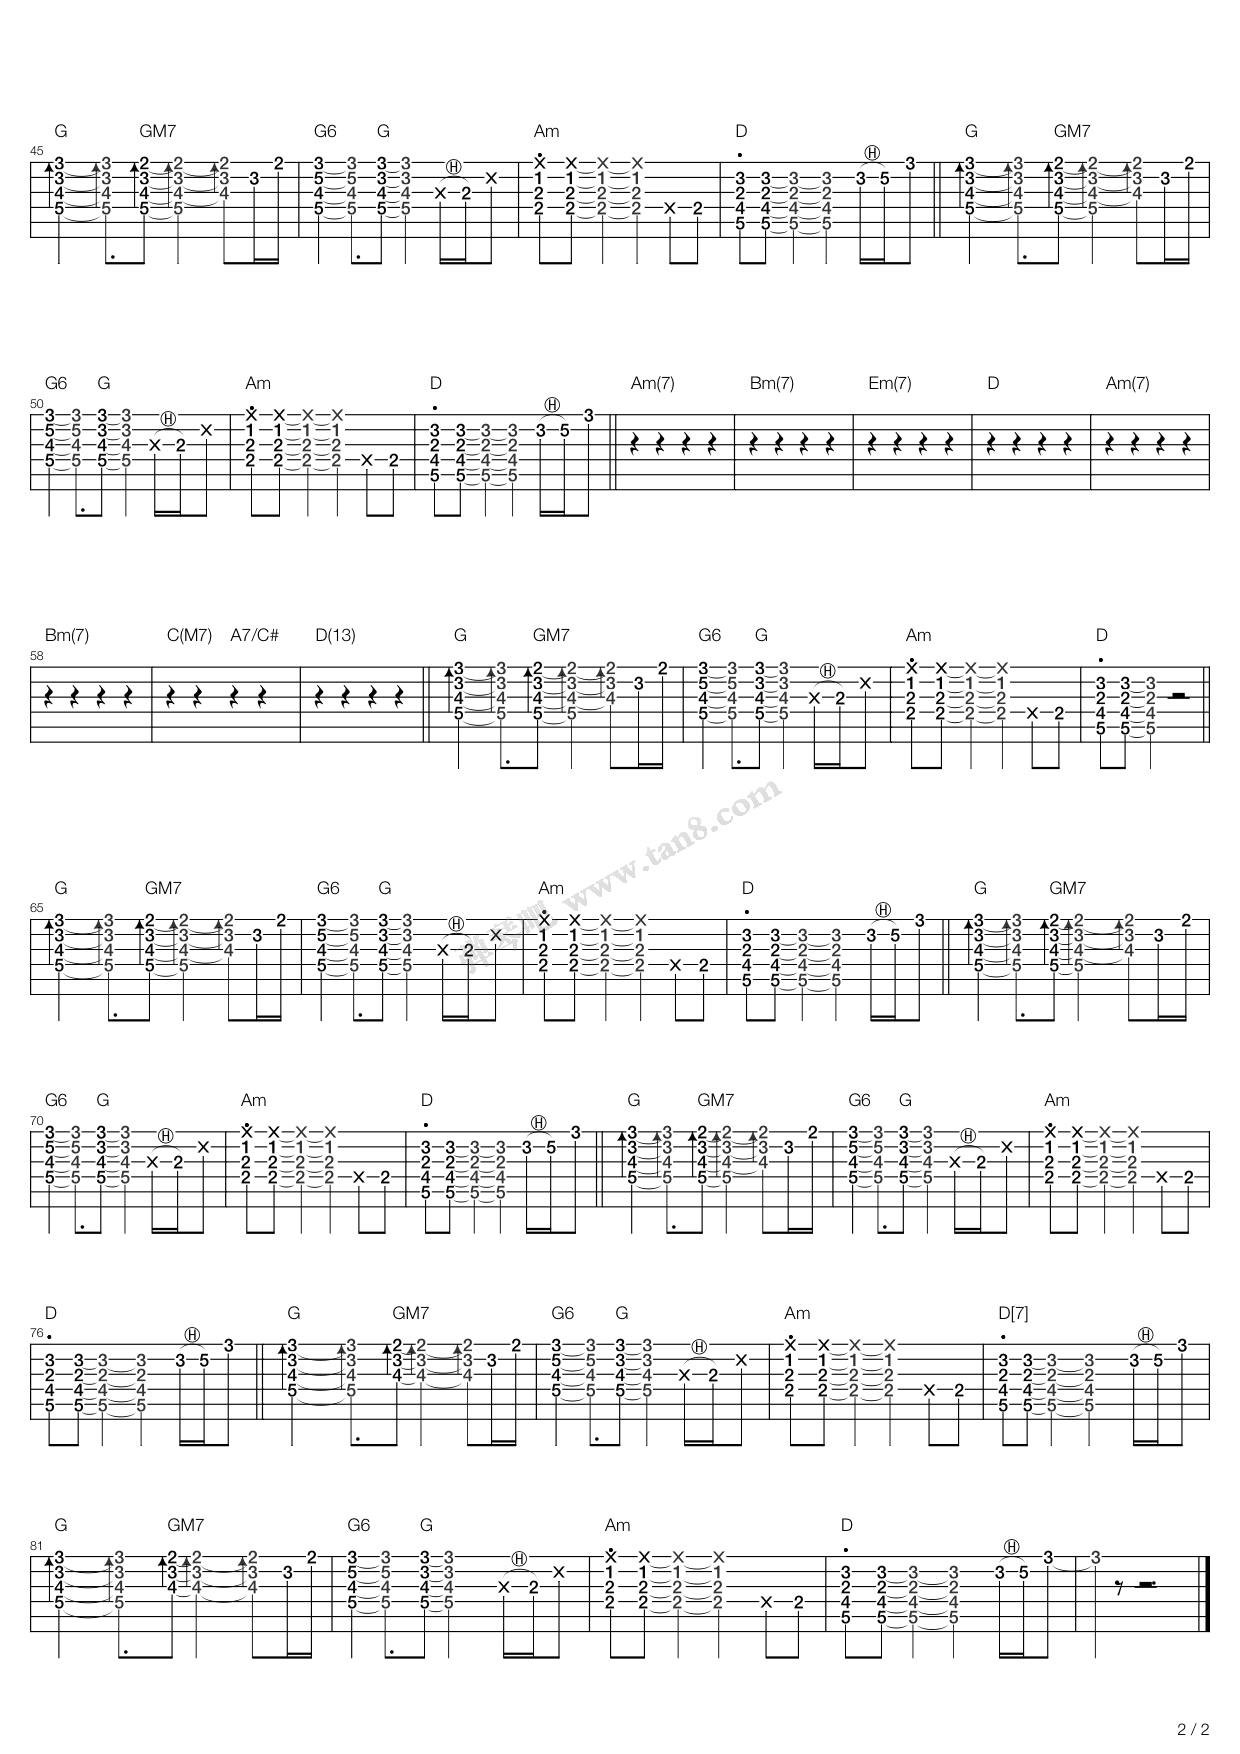 Die In Your Arms by Justin Bieber Guitar Tabs Chords Sheet